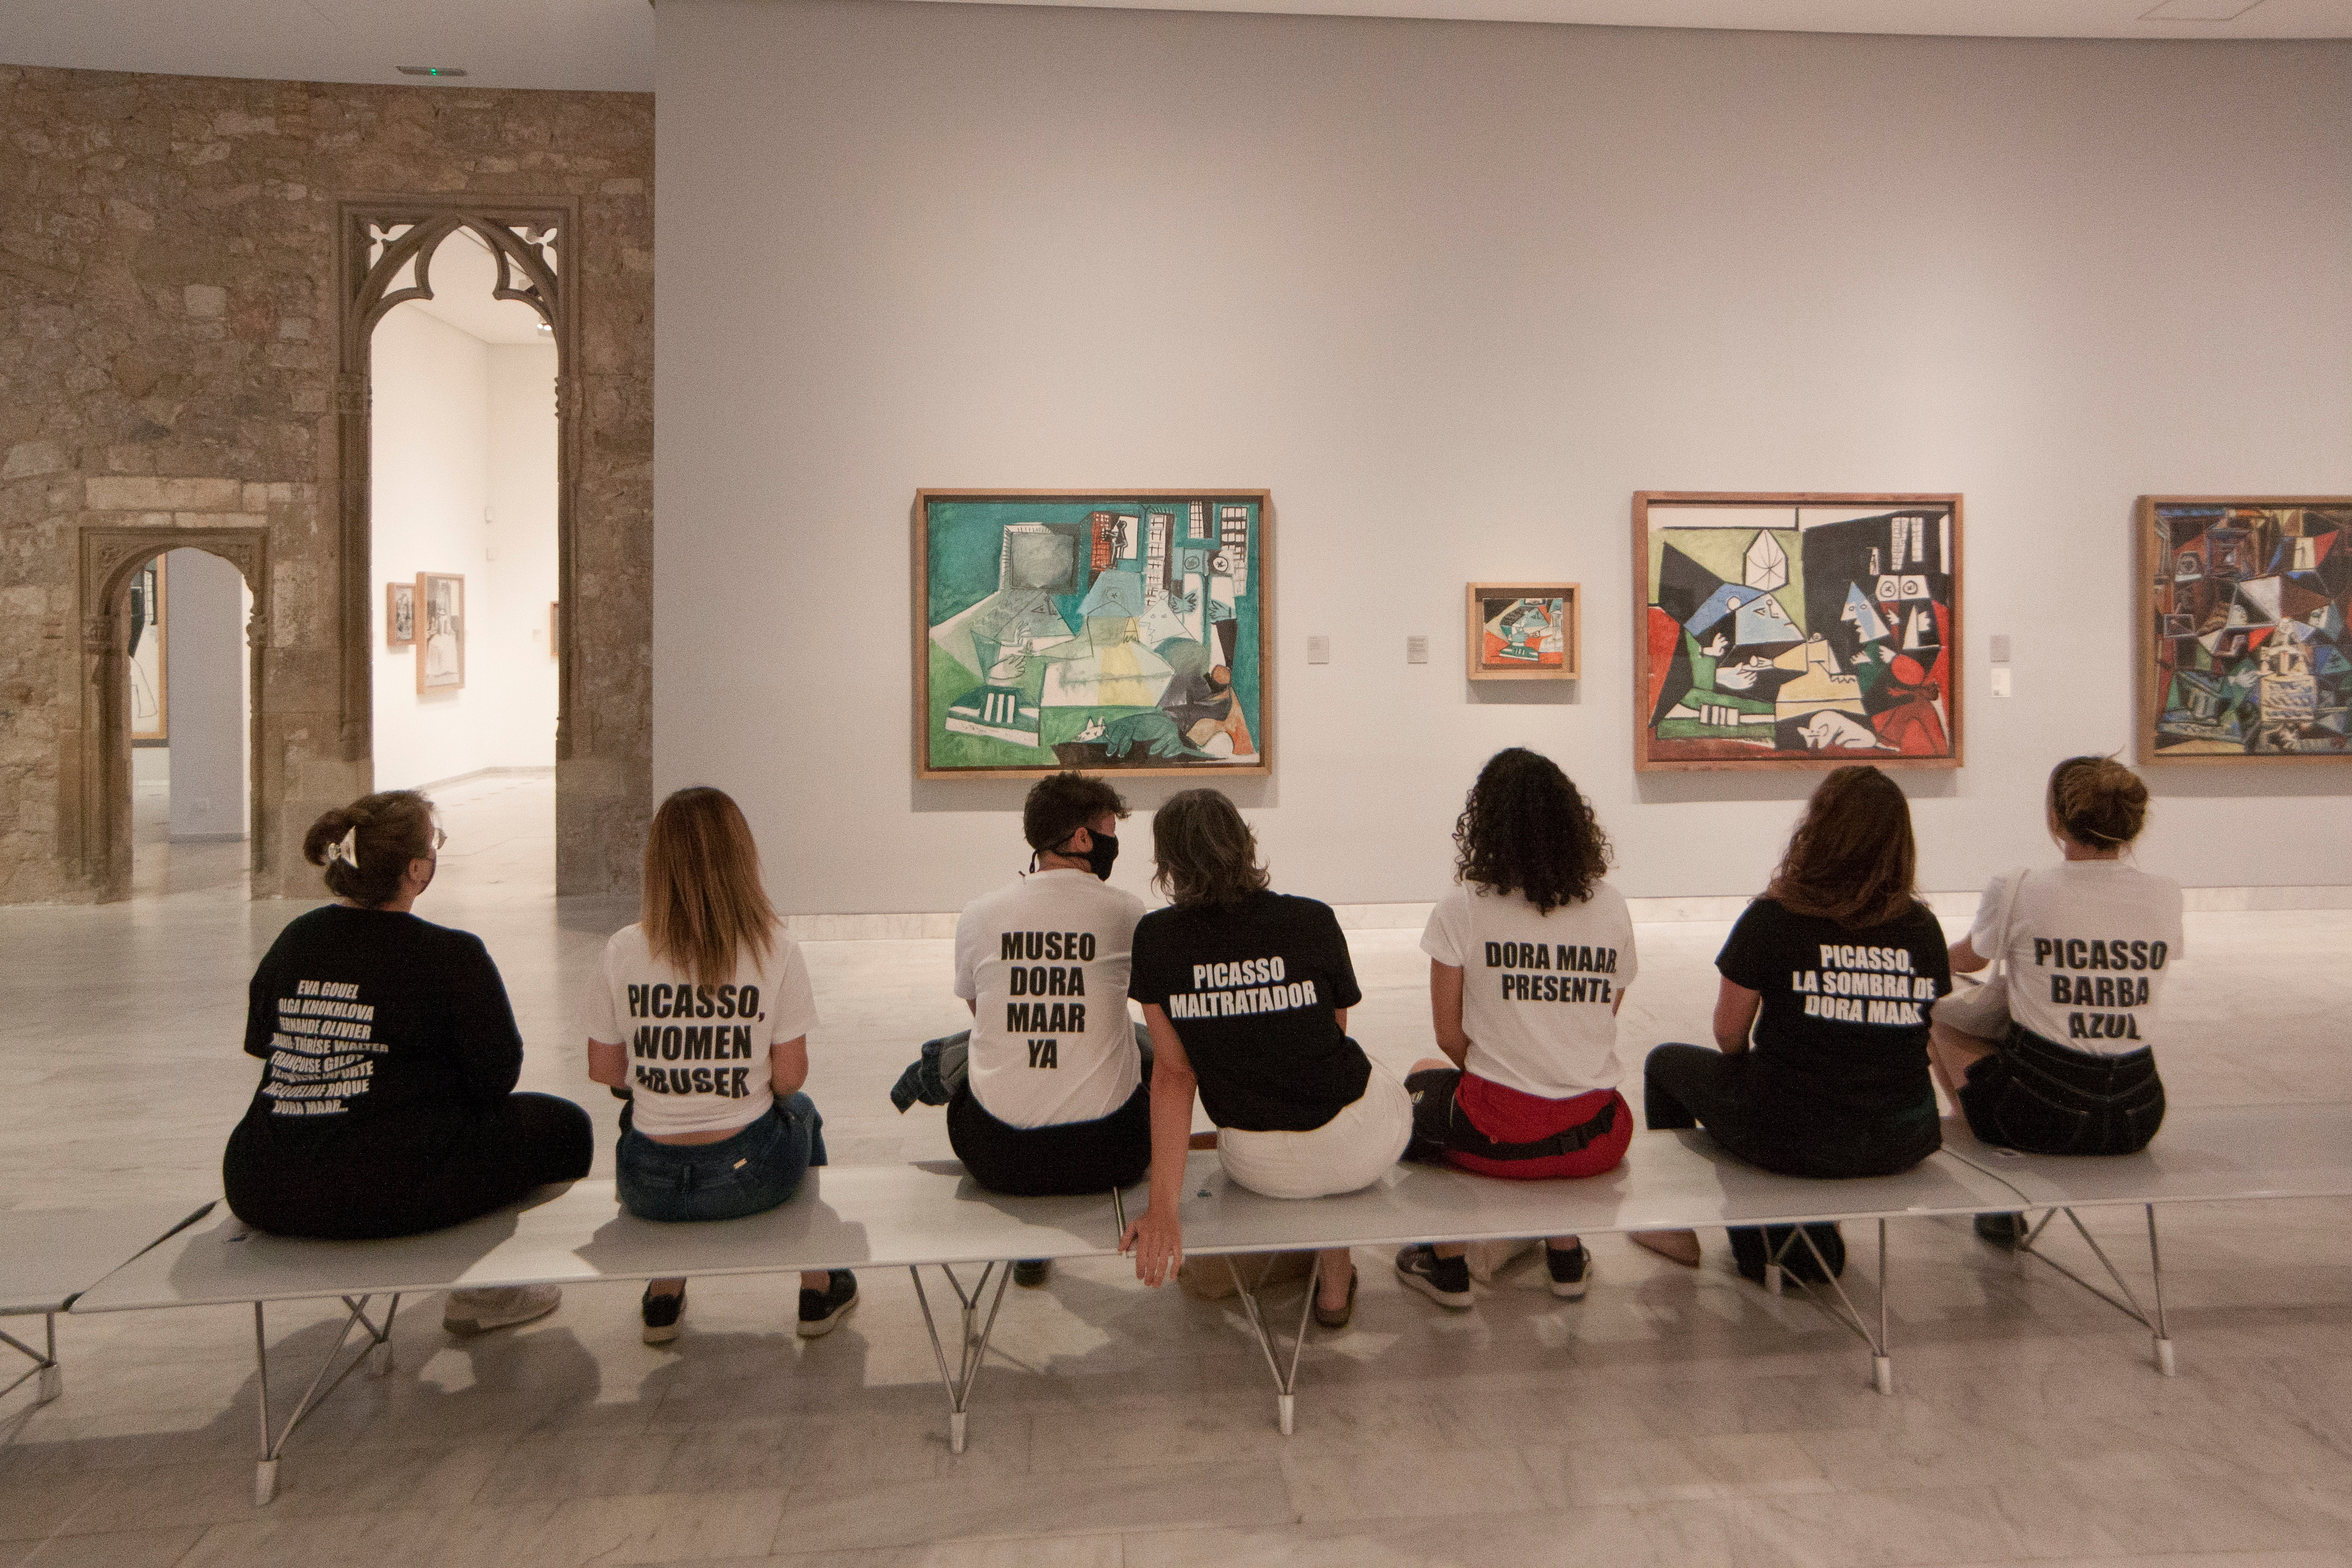 Students protest inside Picasso Museum in Barcelona, Spain May 27, 2021. Picture taken May 27, 2021 in this picture obtained from social media. Ismael Llopis/via REUTERS